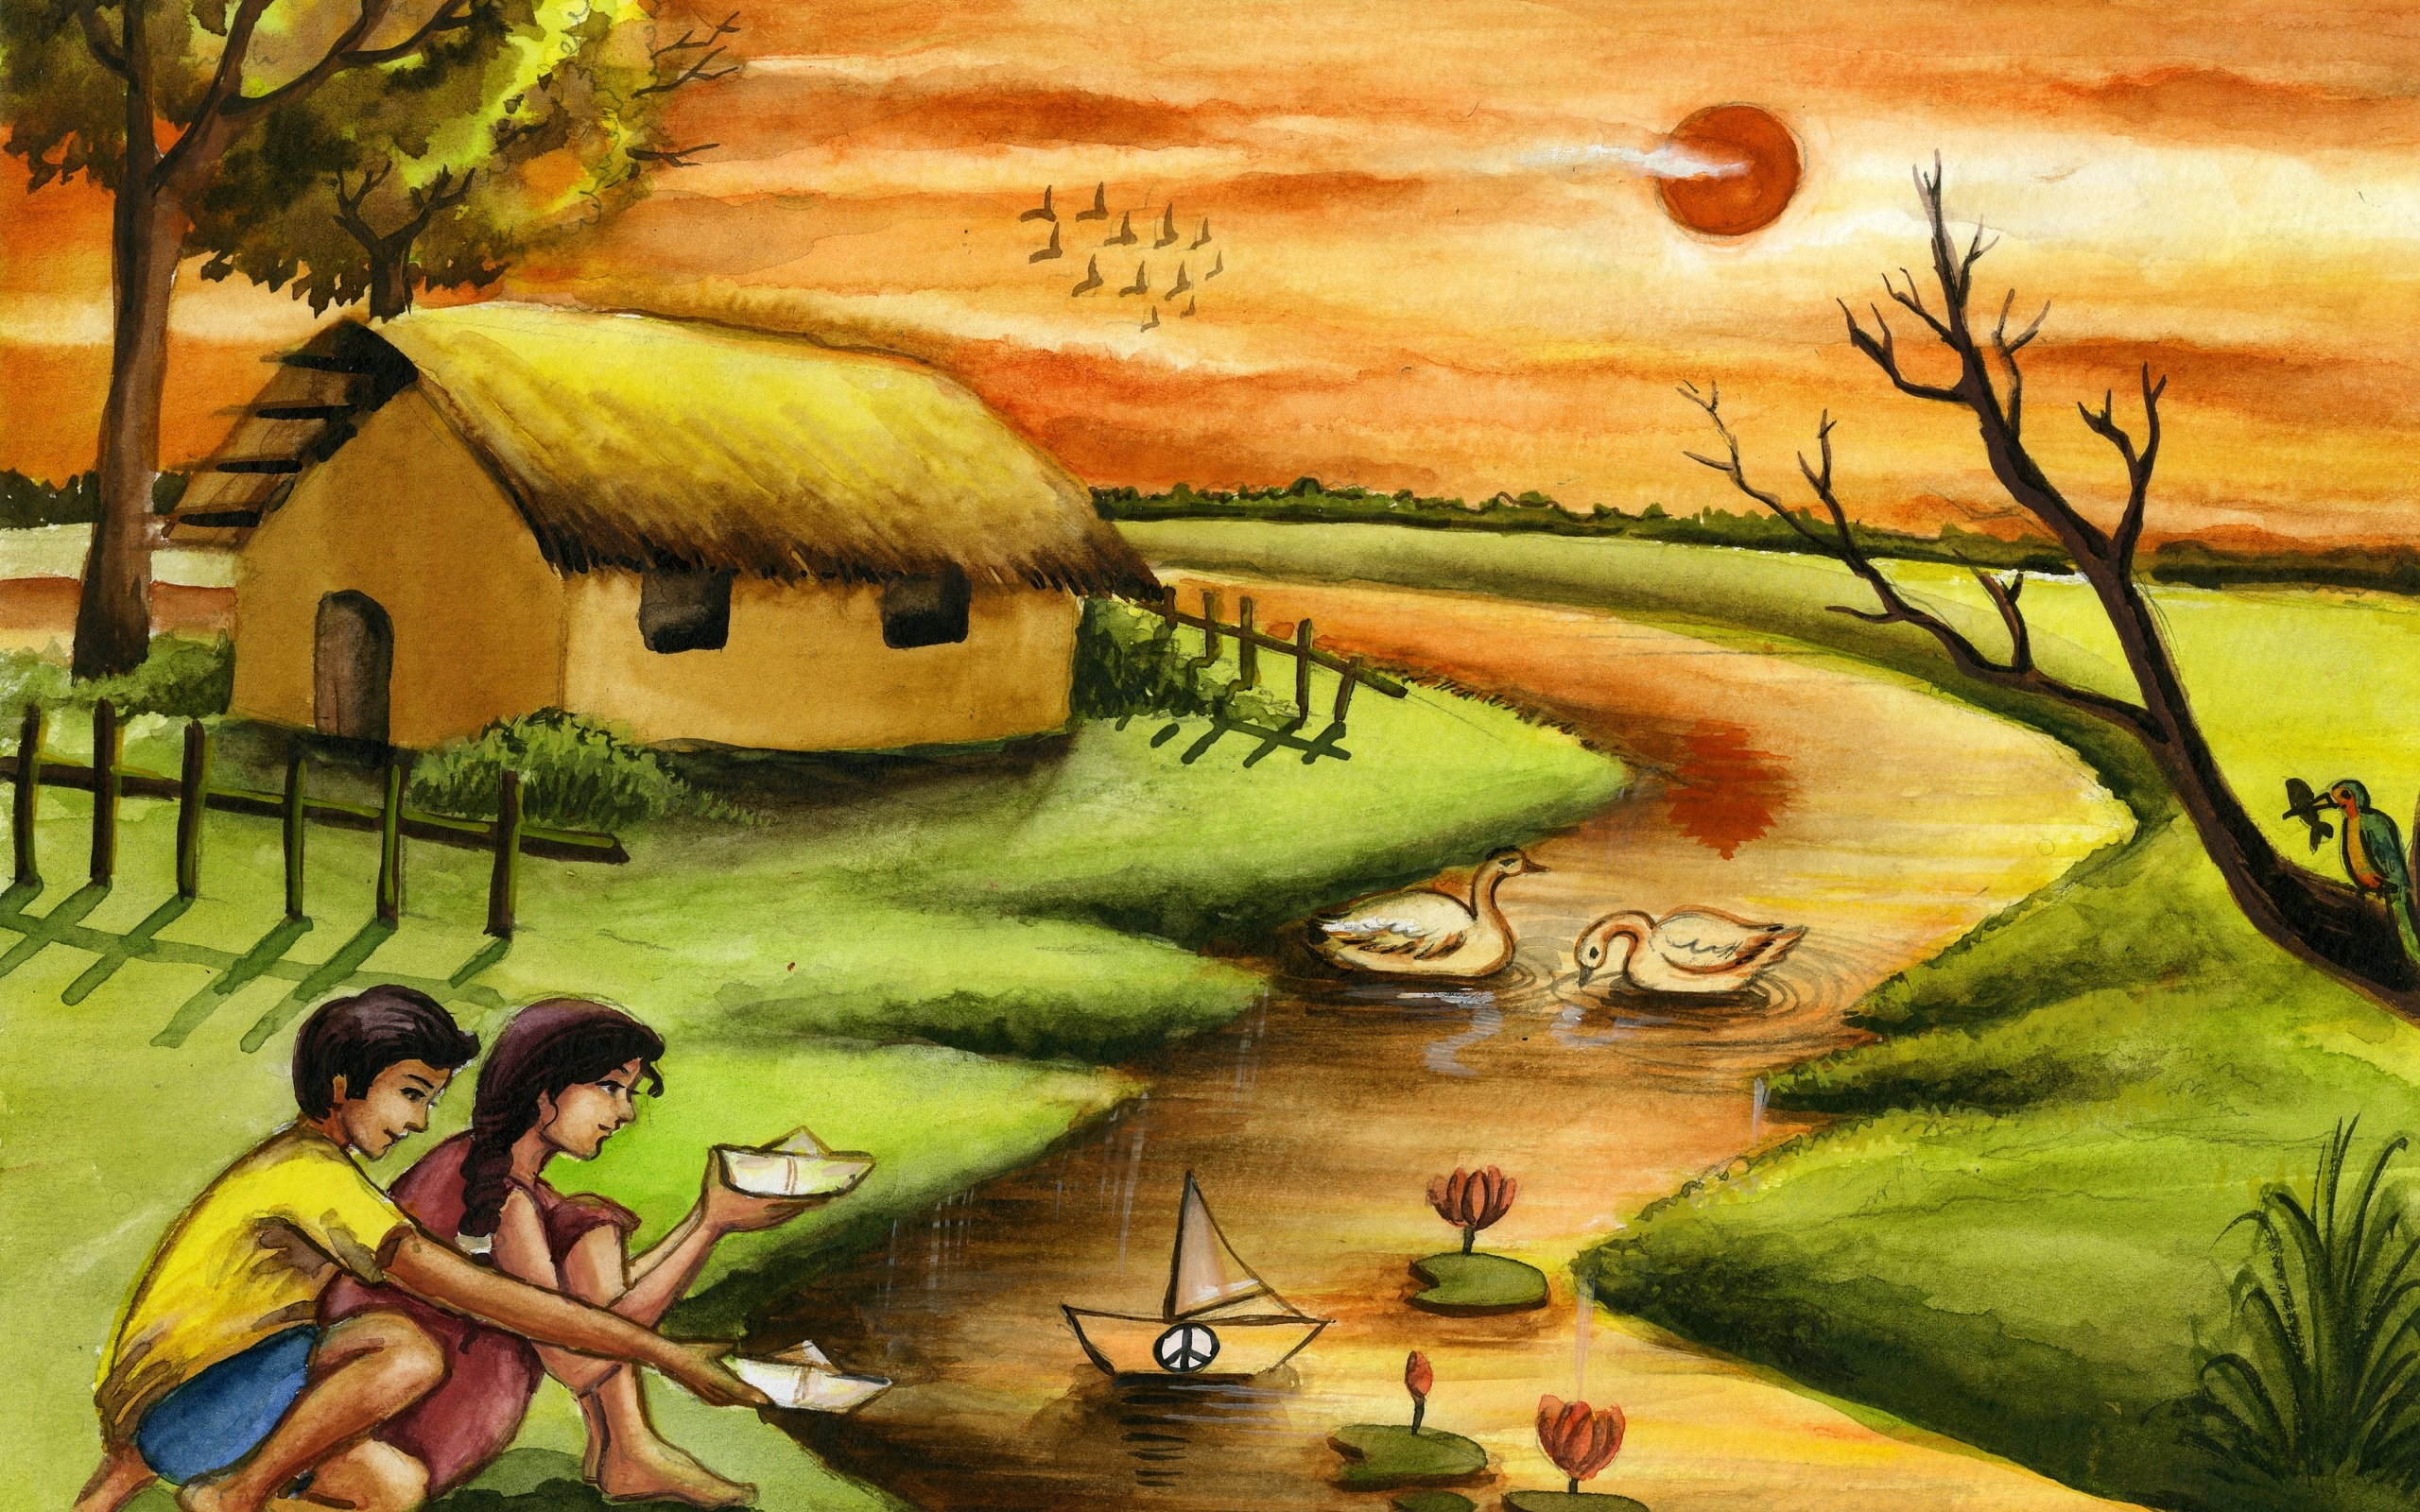 2560x1600 2560x1600 Arts, Drawing, Artwork, Kids, River, Message Of Peace